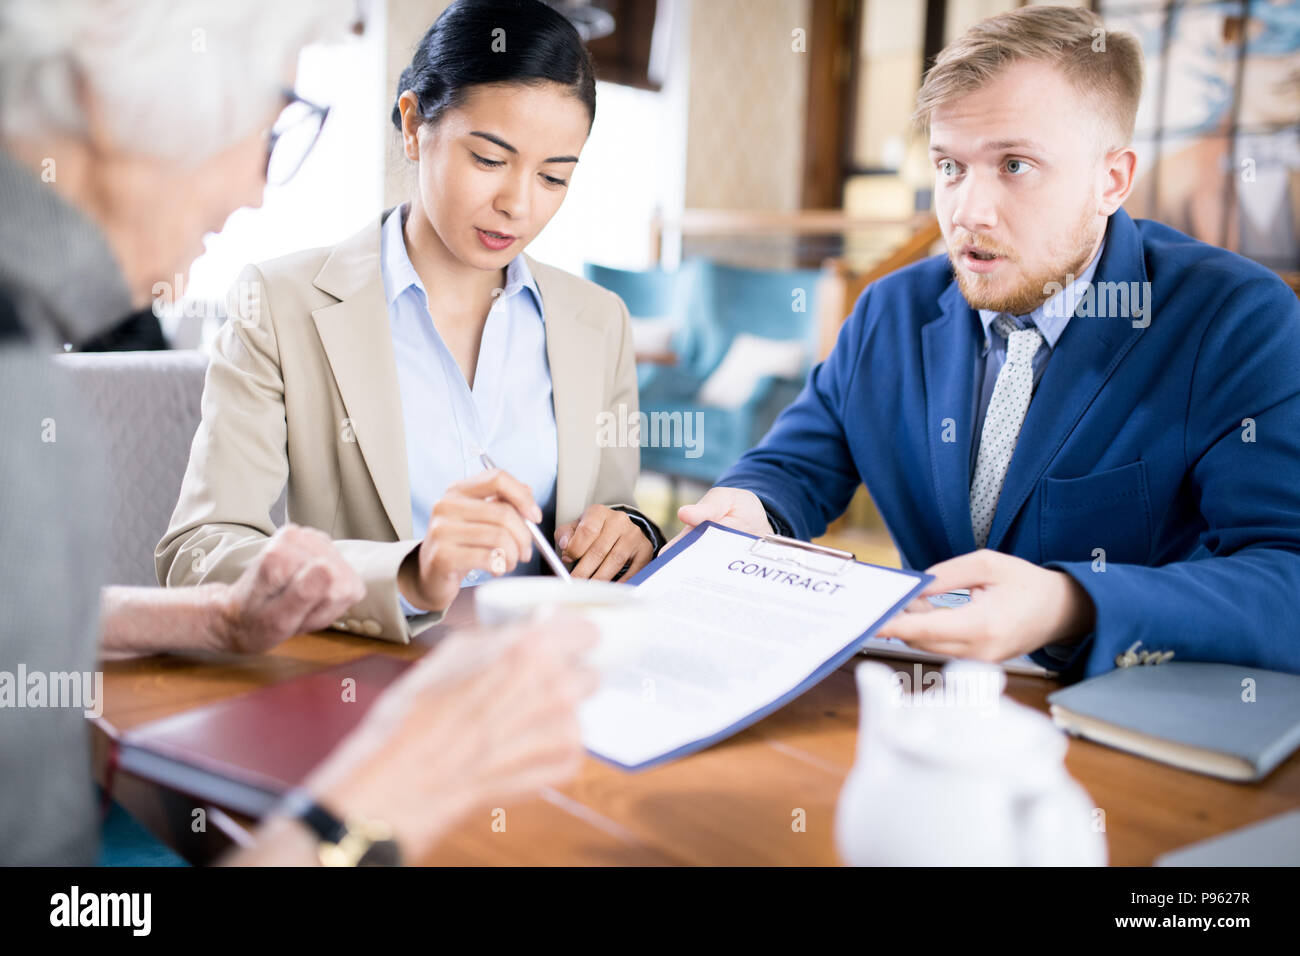 Business contract for elderly - Stock Image